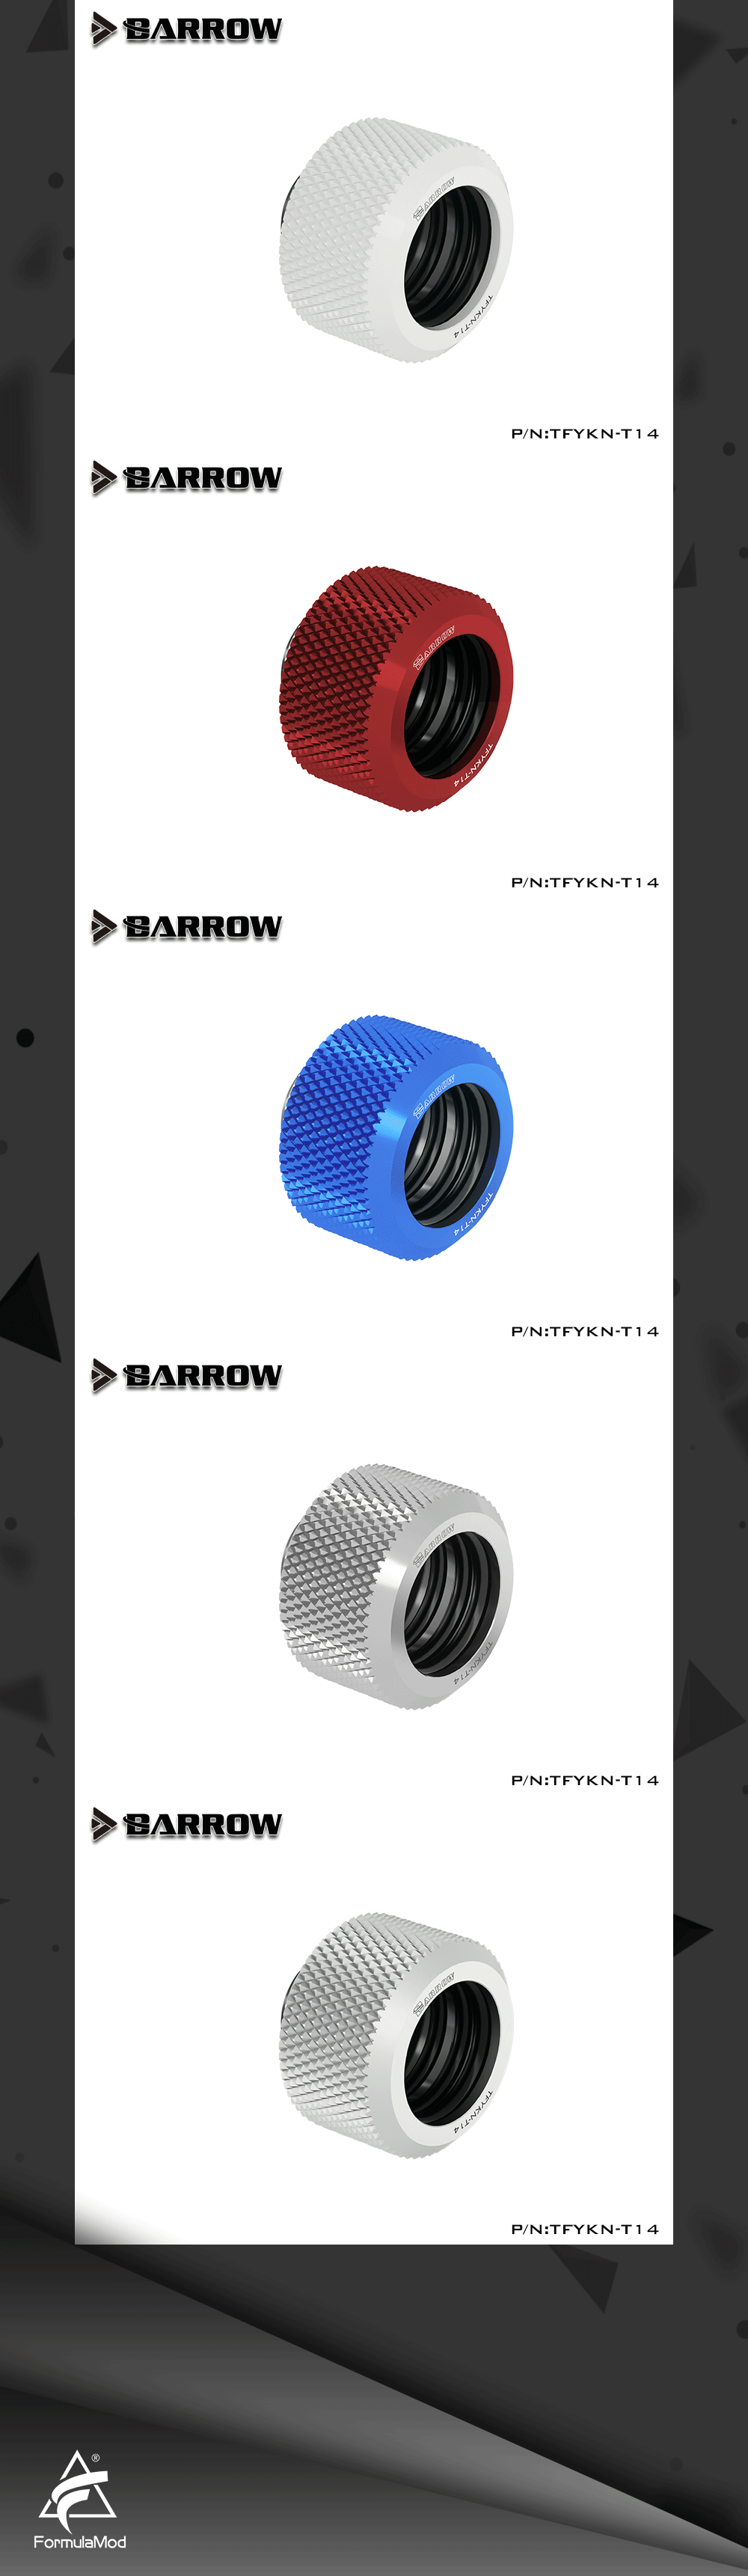 Barrow TFYKN-T14, Choice Hard Tube Fitting Kits, G1/4 Adapters For OD14 Hard Tubes